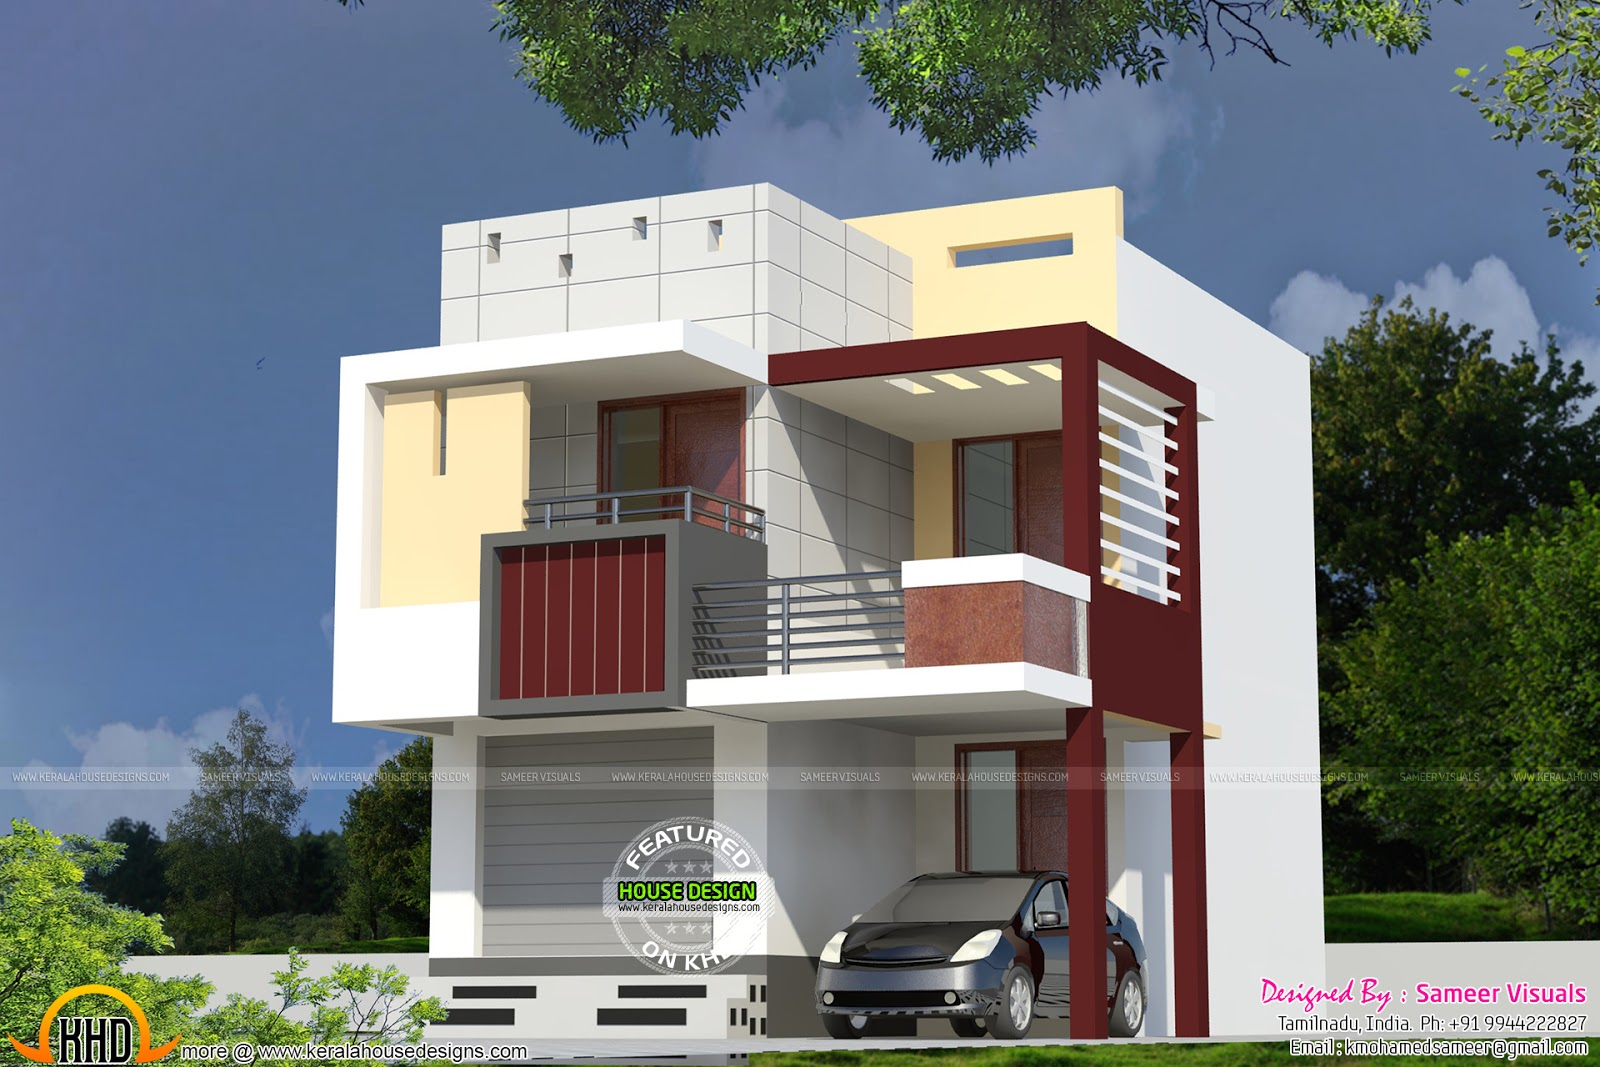 Small House Elevation Kerala Style : Very small double storied house kerala home design and